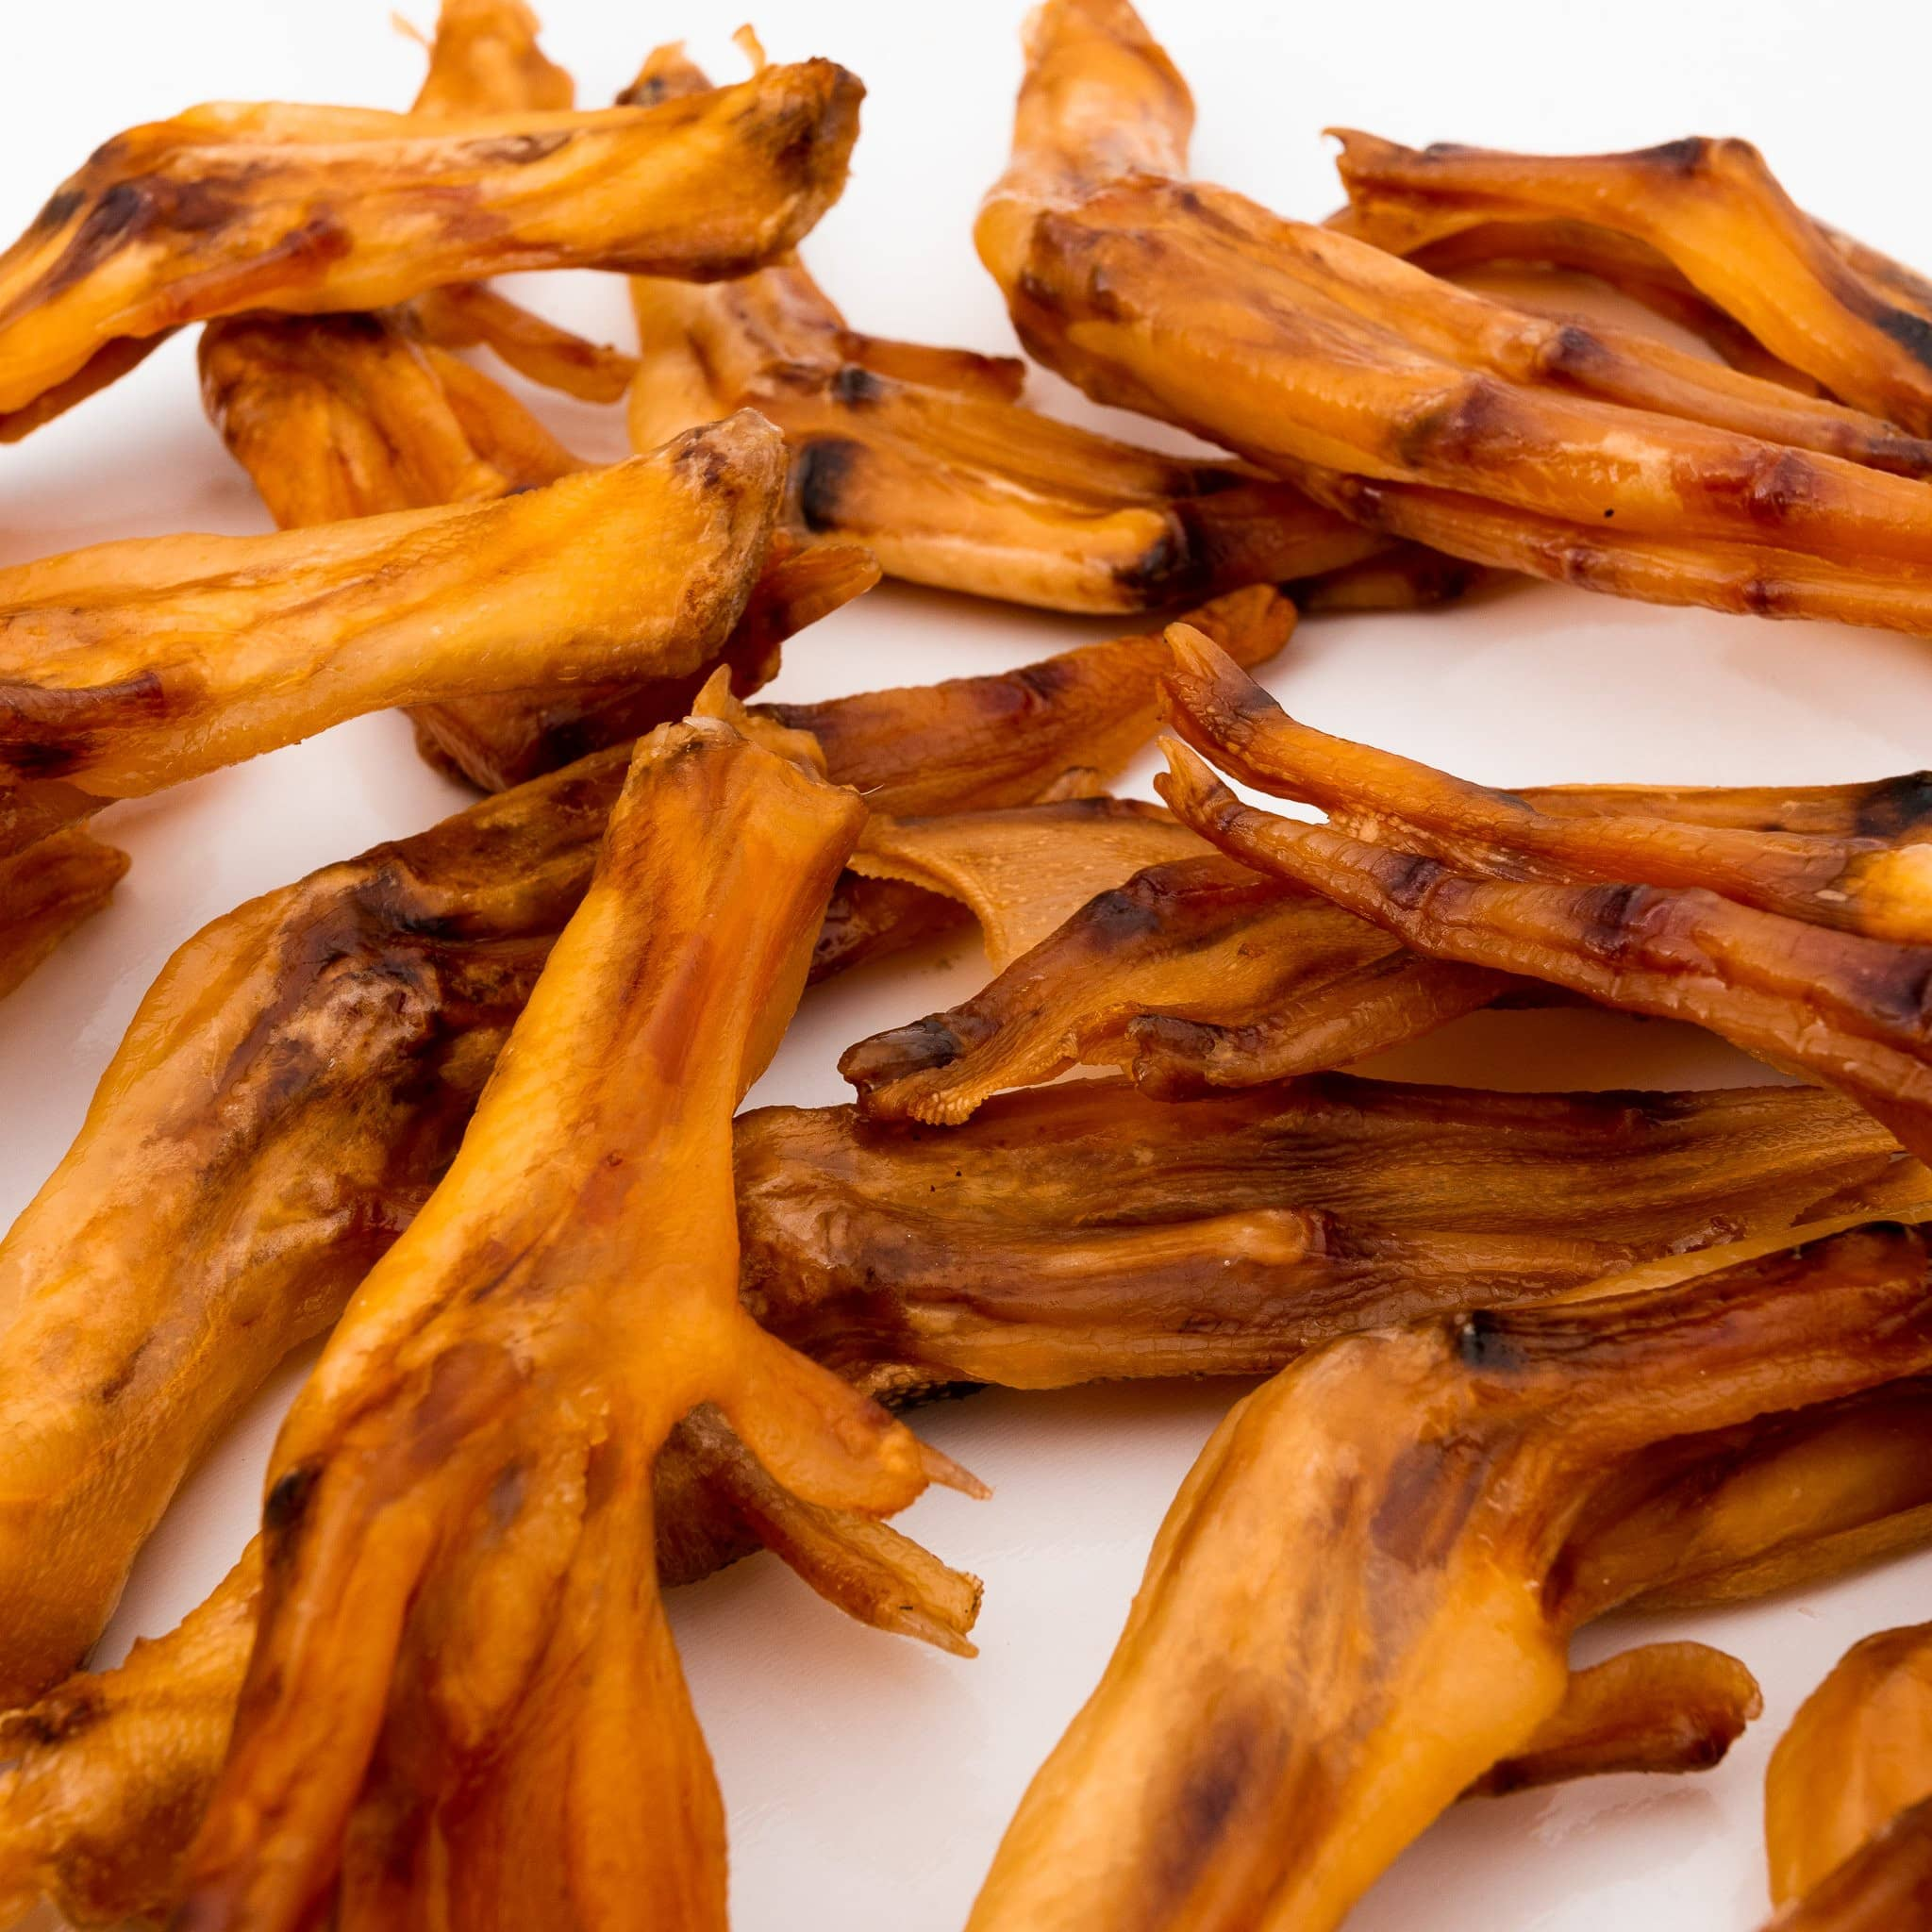 Duck Feet 30 Pack - Tasty Long Lasting Single Ingredients All Natural Dog Chews